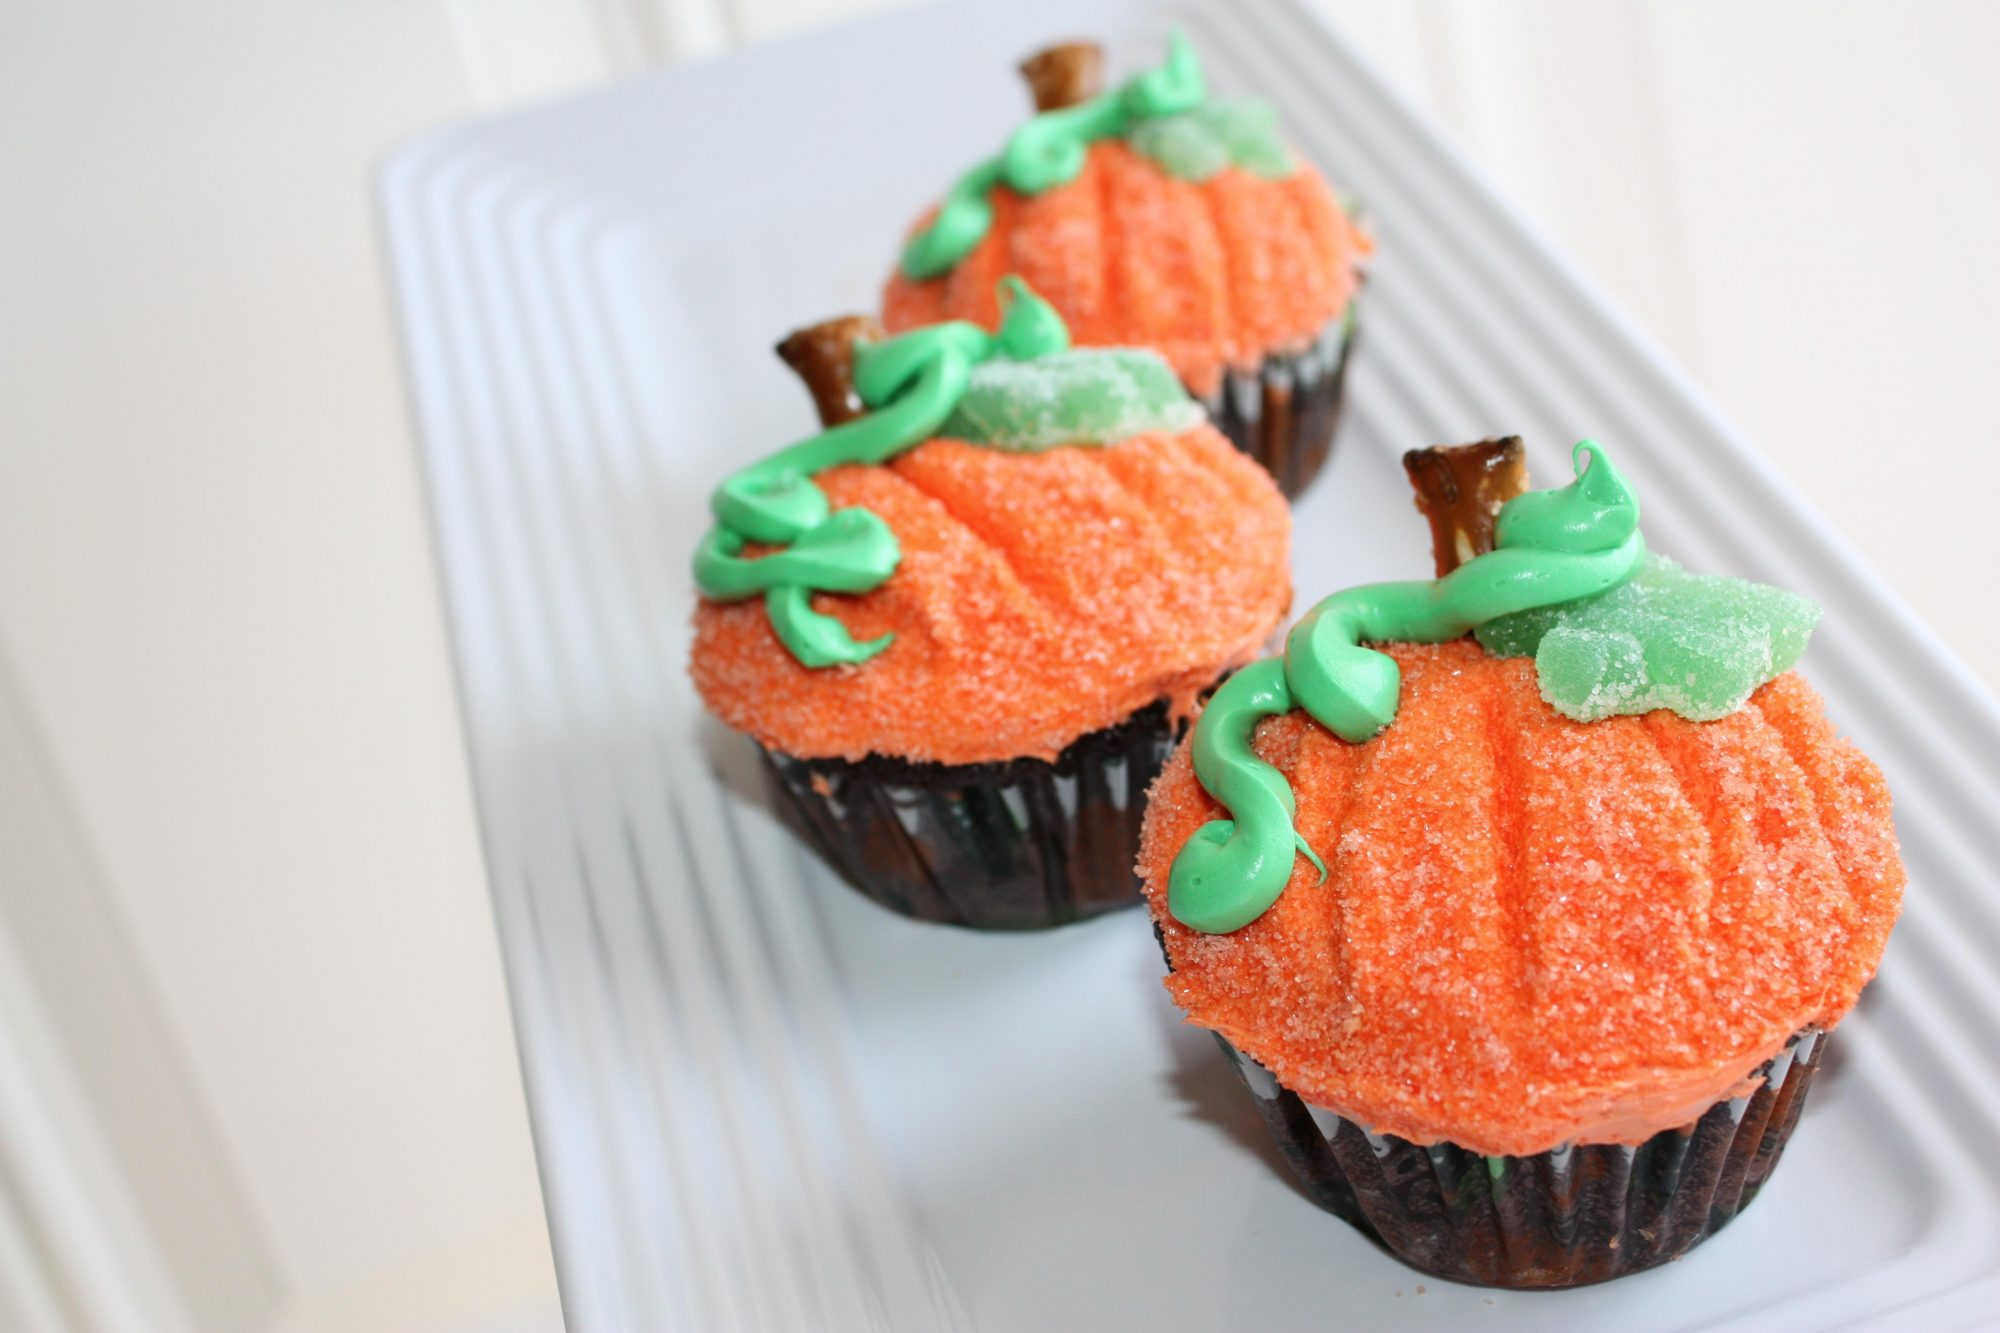 Cupcakes decorated to look like pumpkins with orange frosting, pretzel rod stems, and piped green vines